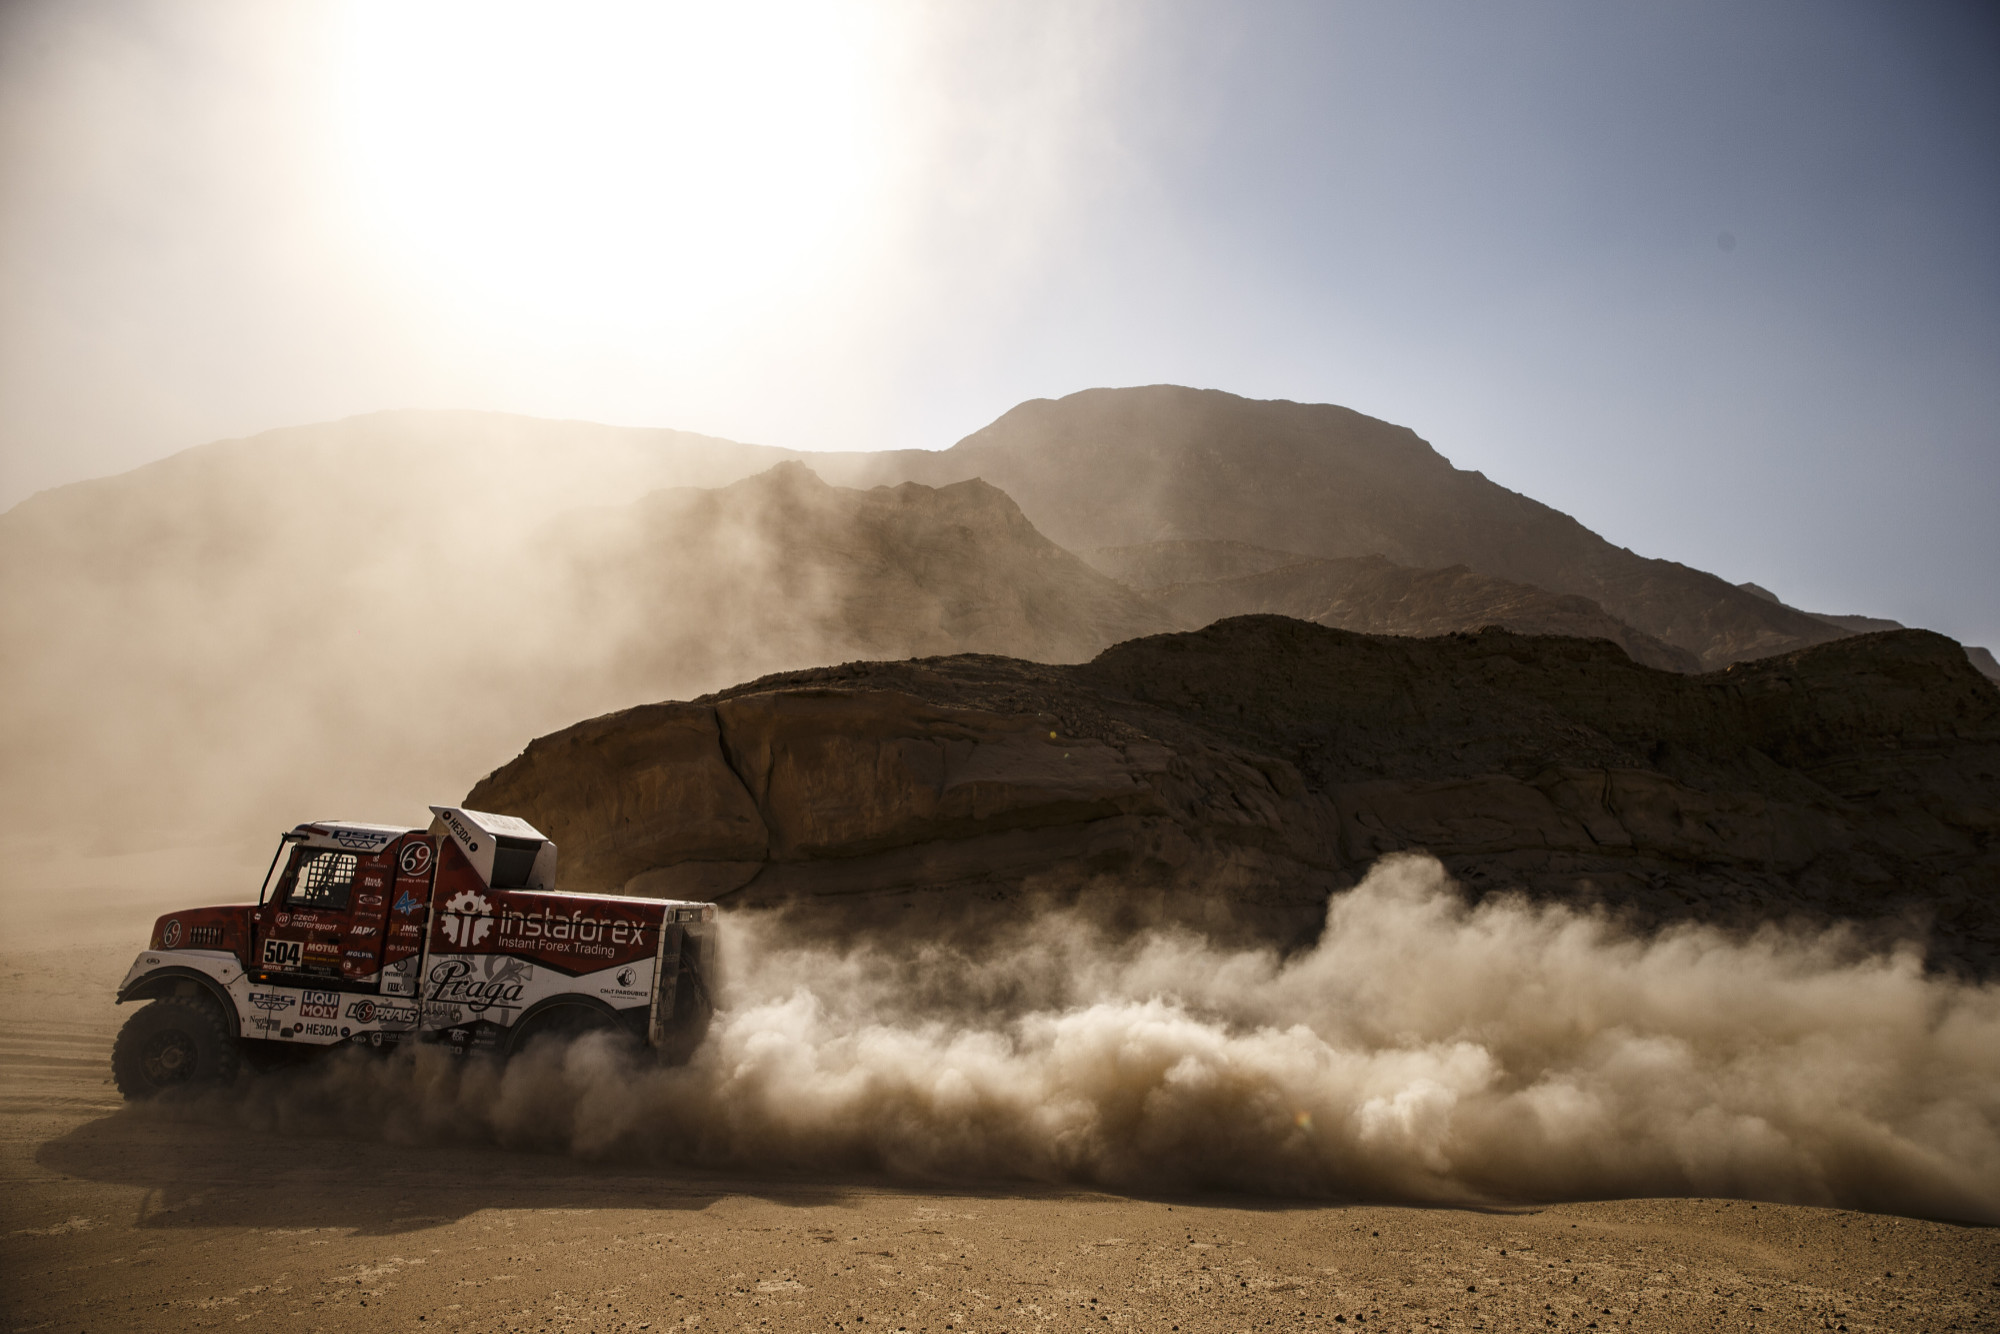 Dakar 2021: Toughest stage, but still calm. Is the storm coming?